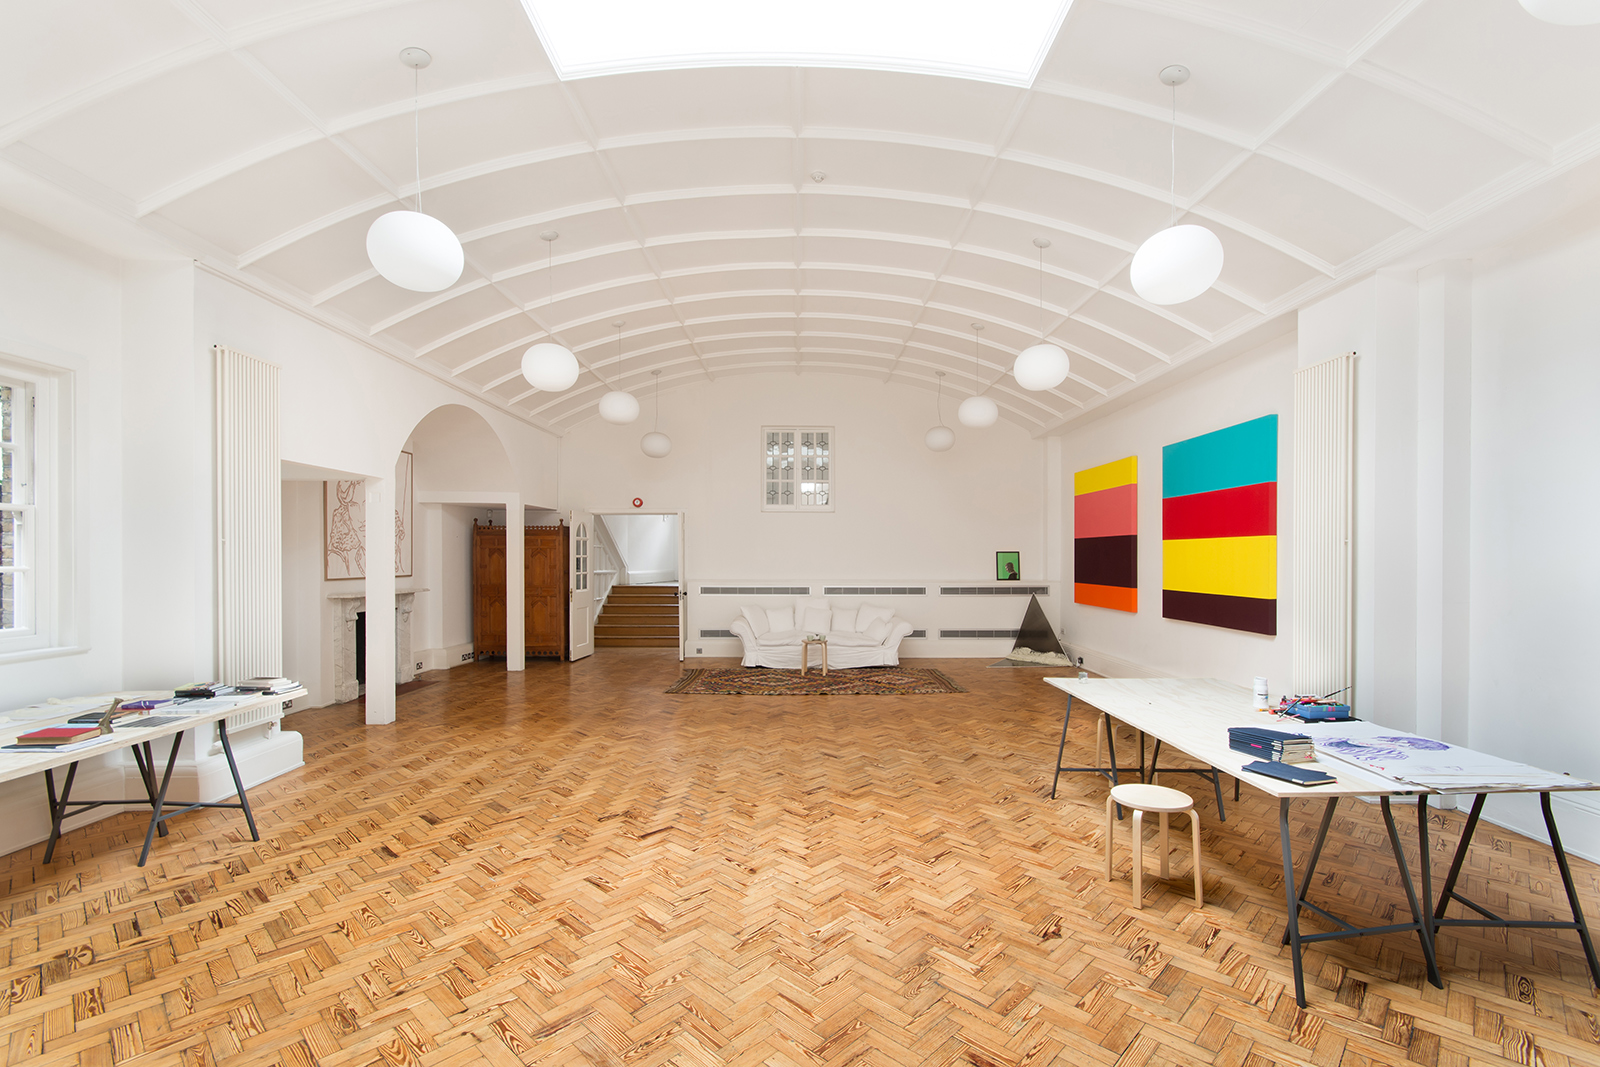 10 of the most unusual London homes for sale right now